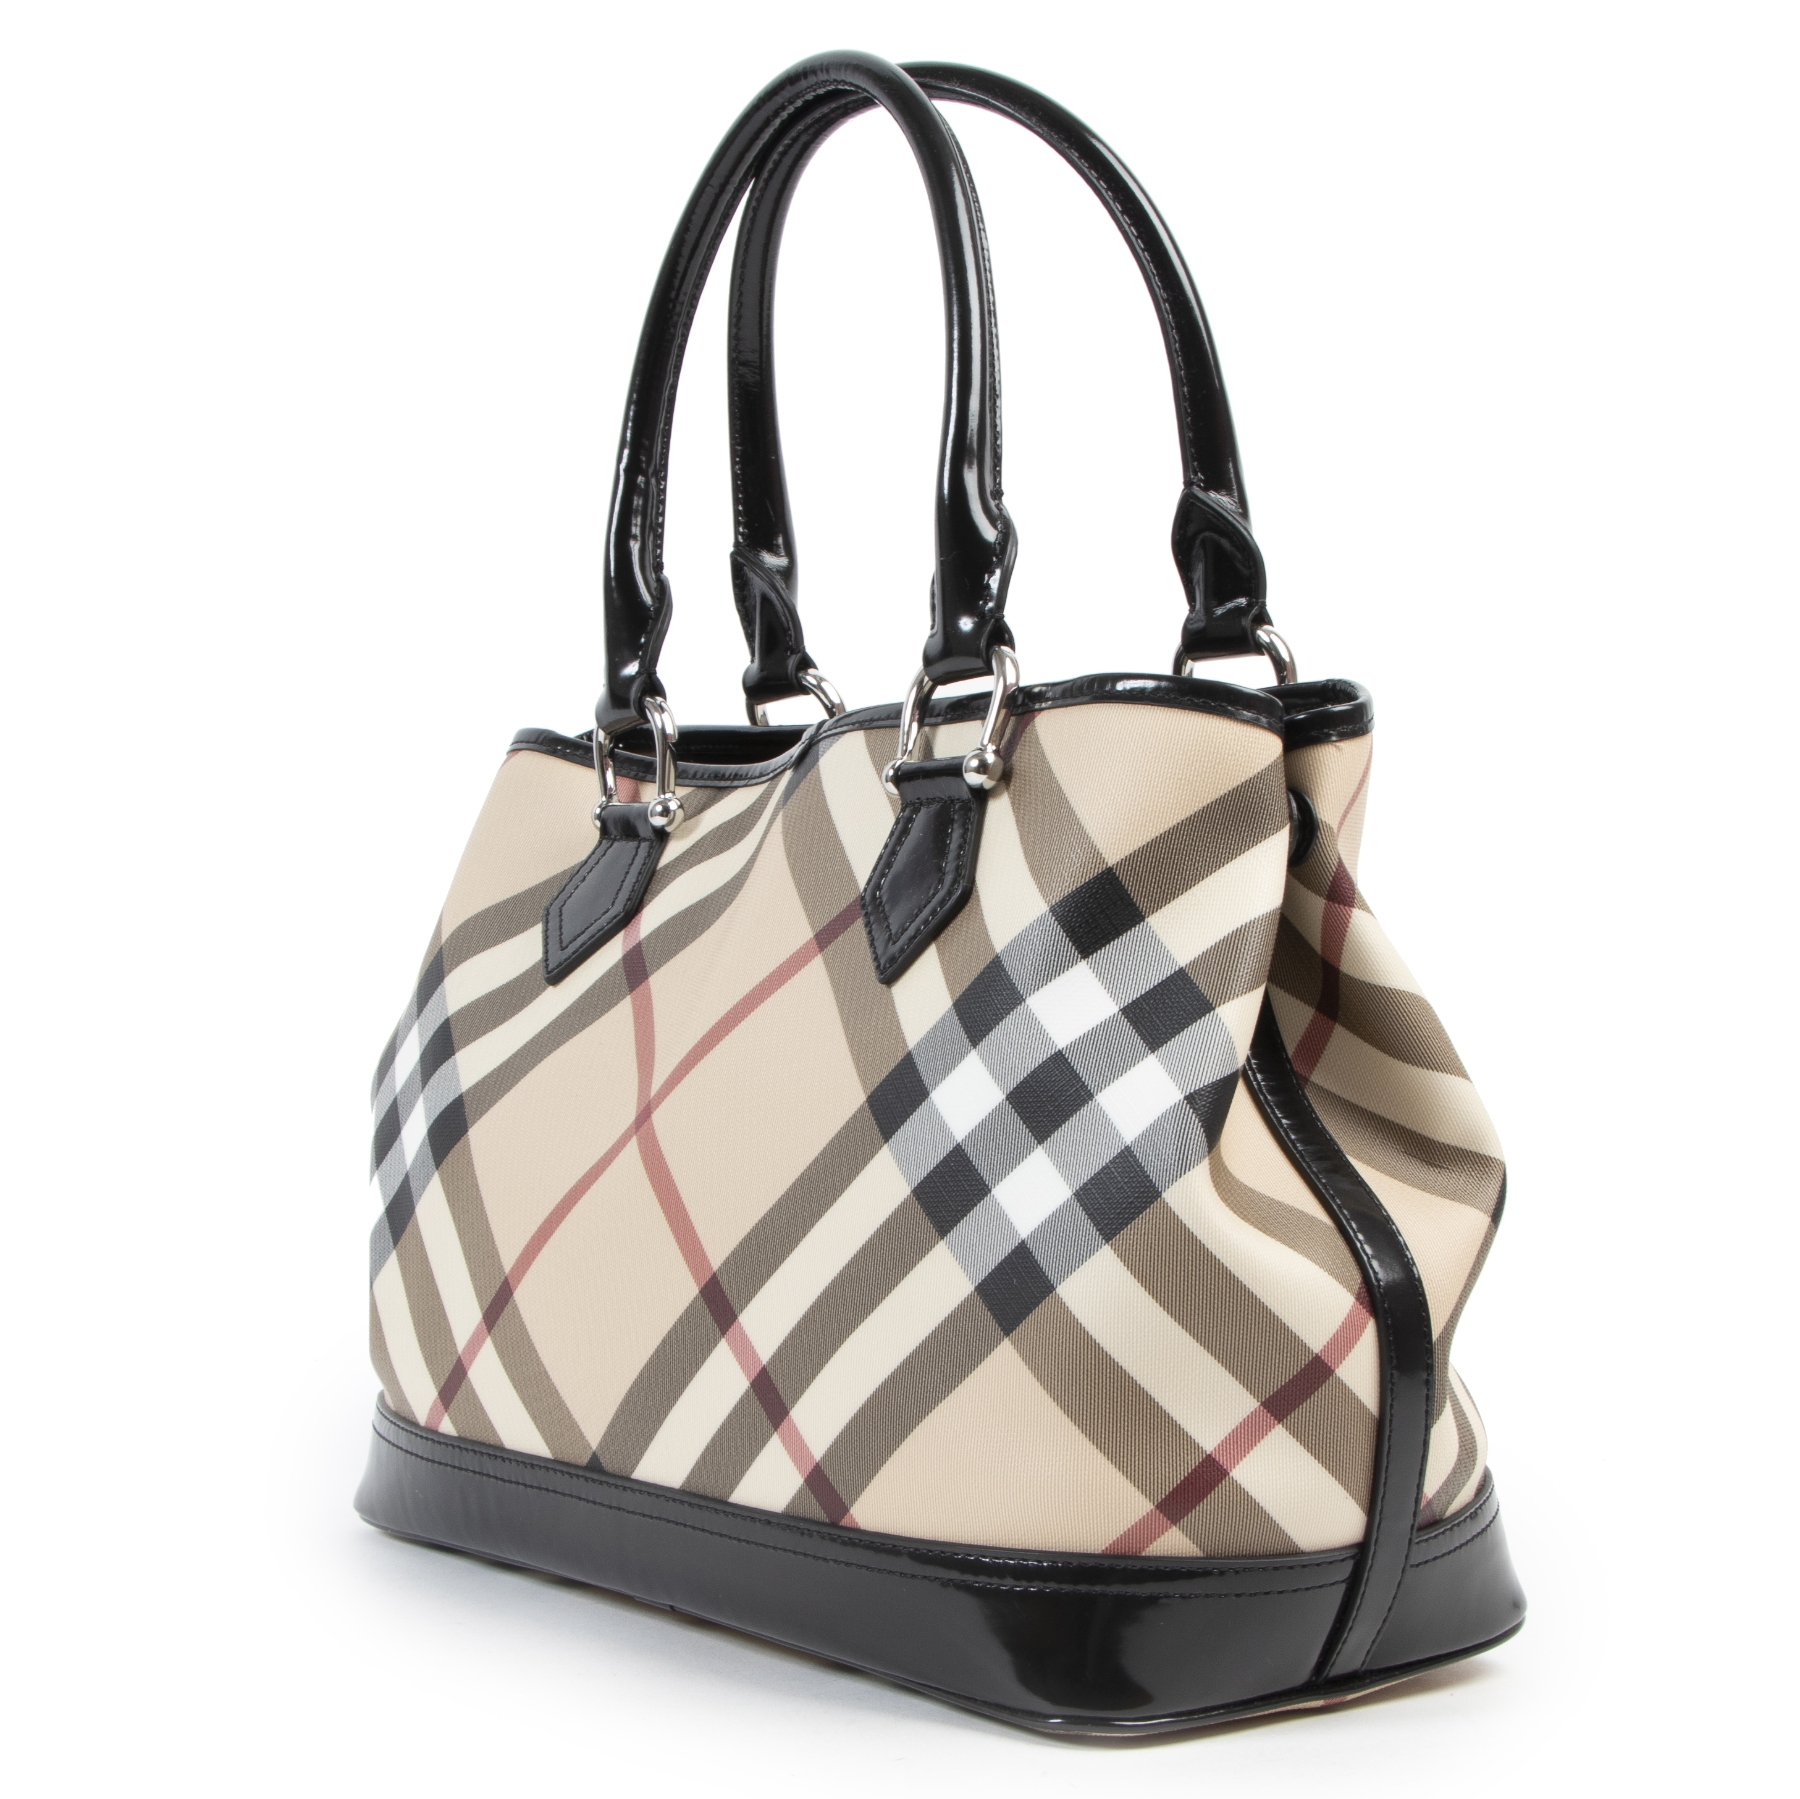 Buy preloved Burberry handbags at LabelLOV Antwerp.